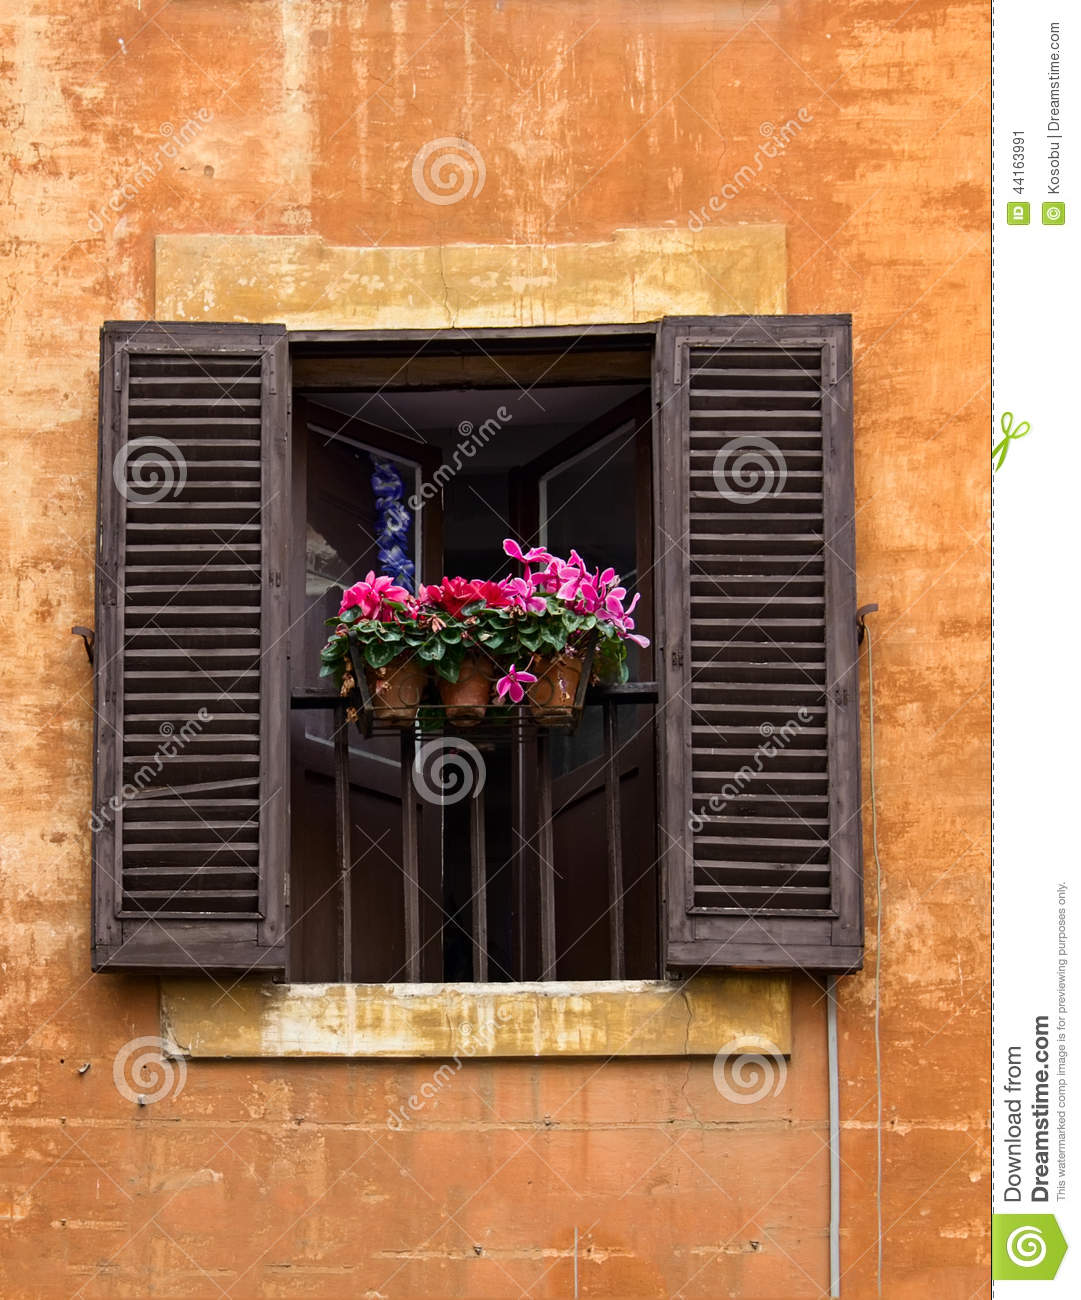 Opened Window With Flower Pots On Facade In Rome Italy